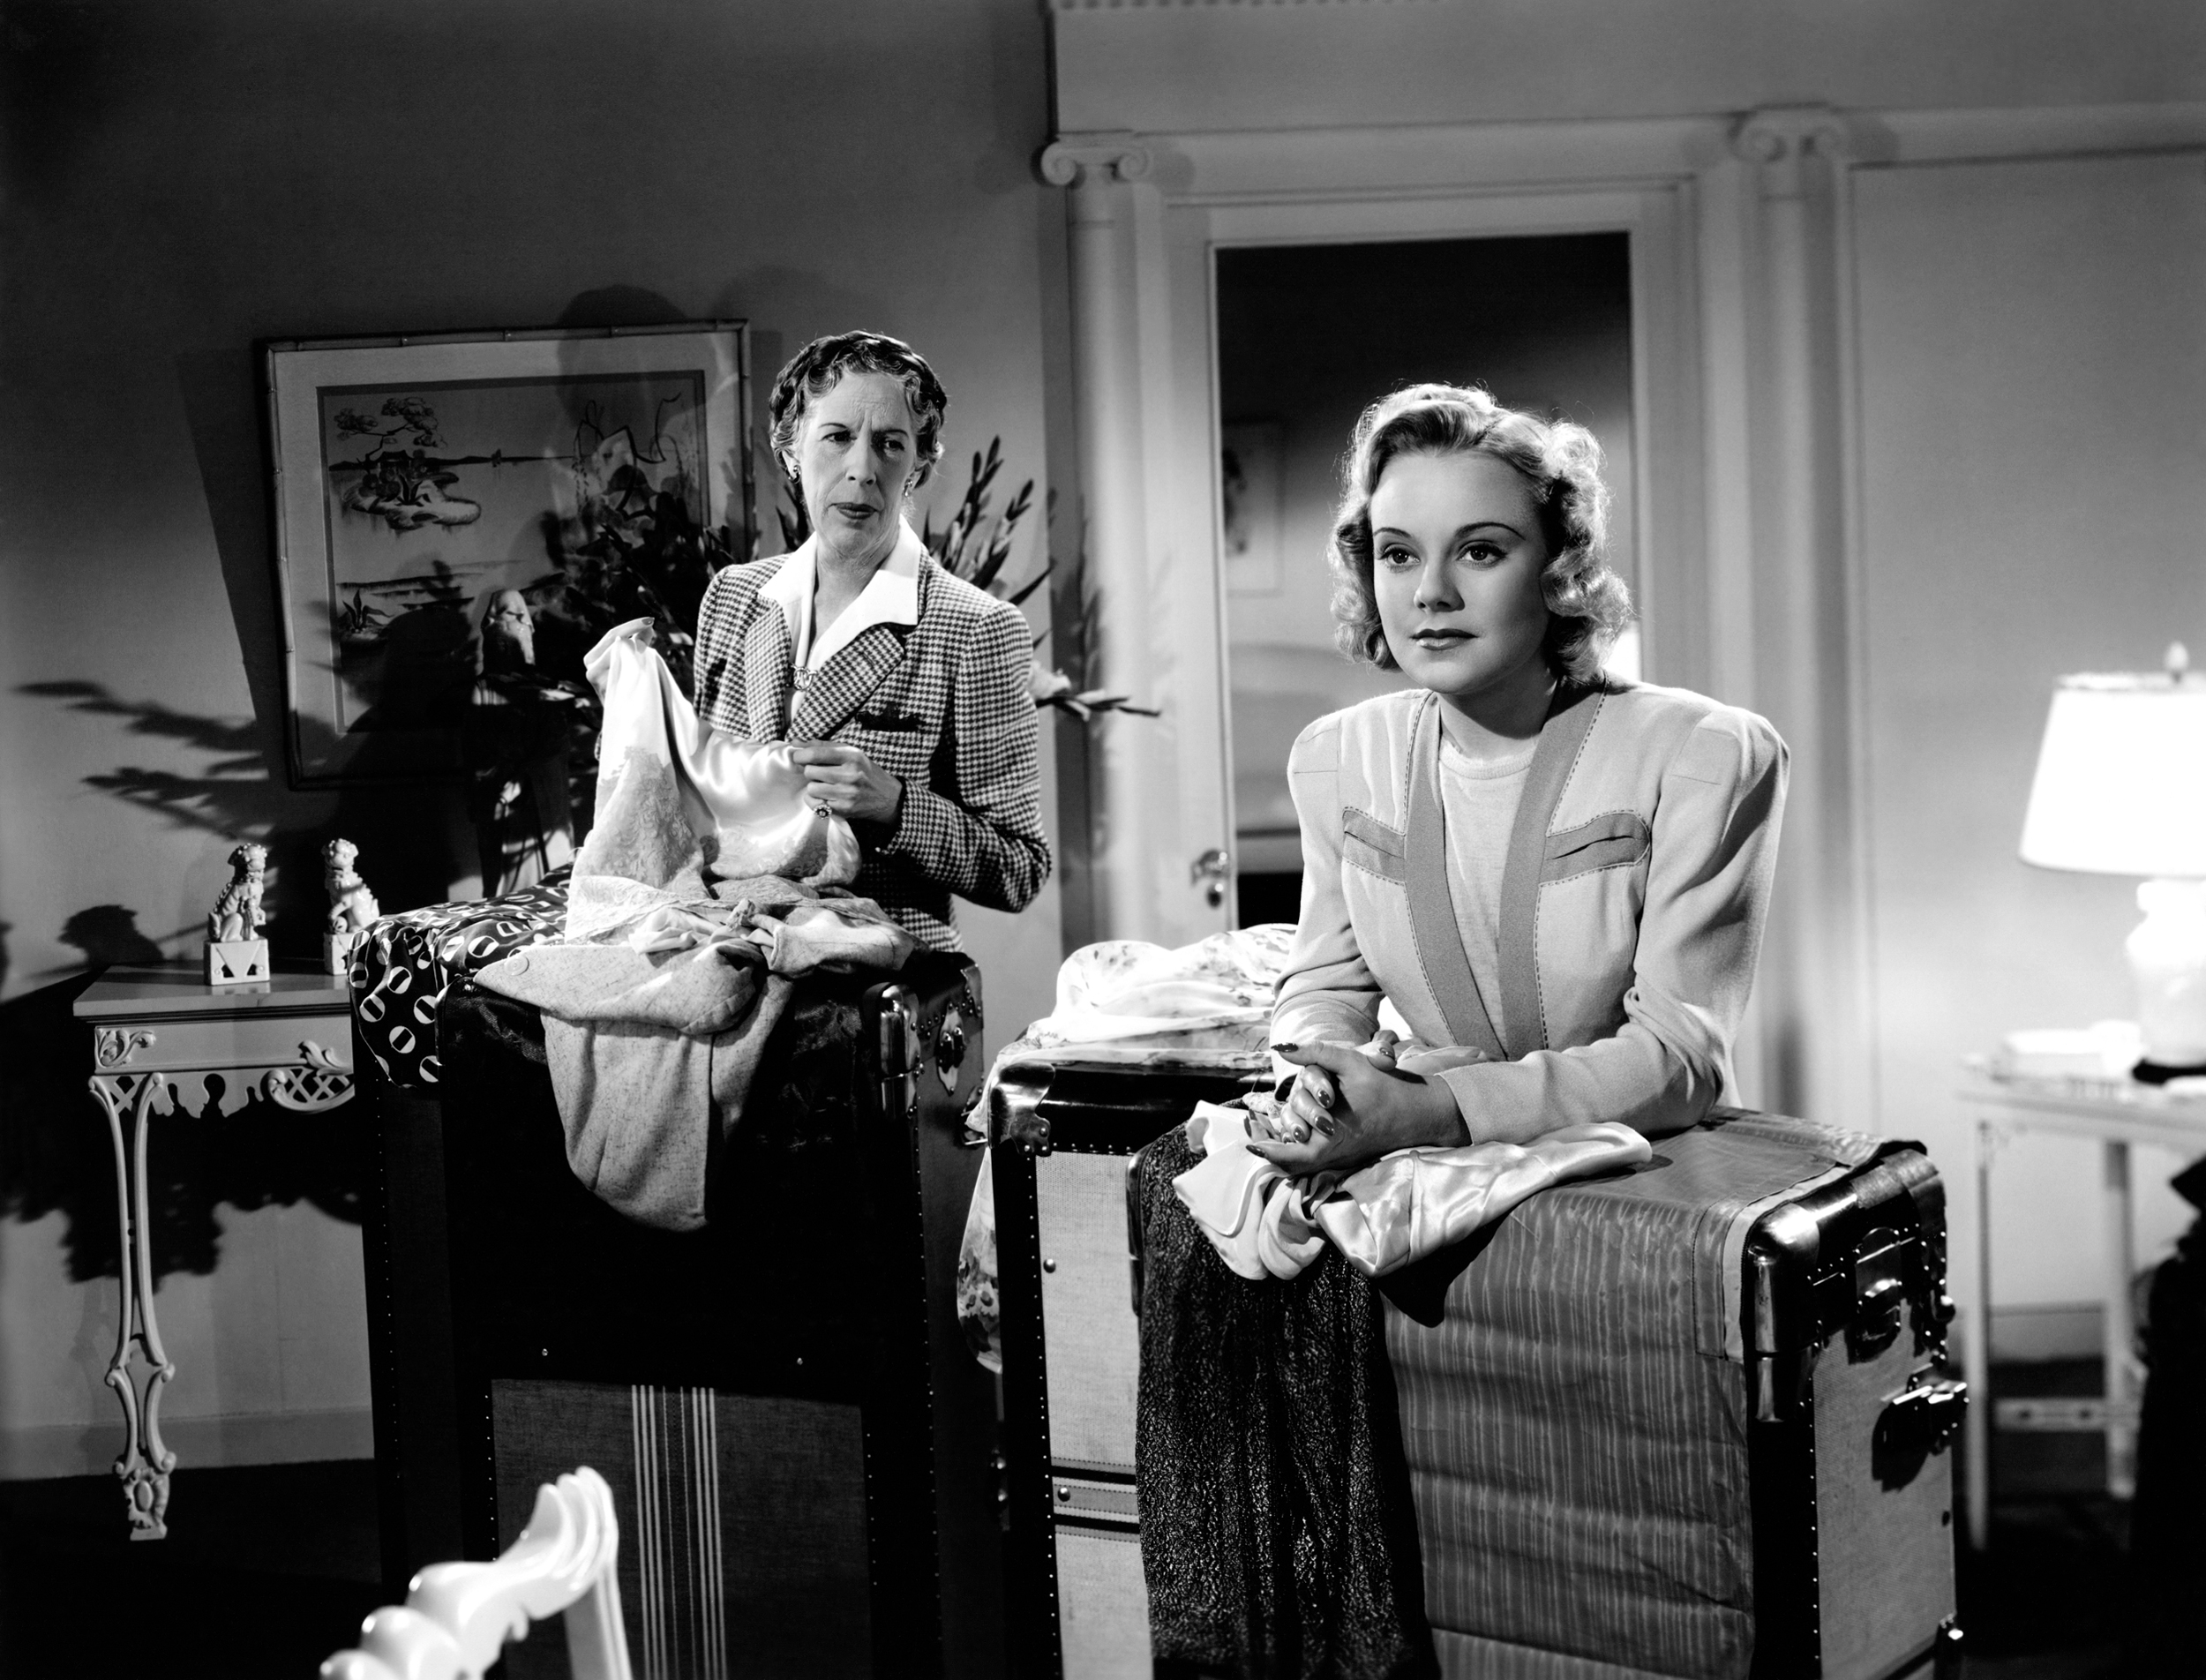 Sonja Henie in Second Fiddle with With Edna May Oliver (courtesy of Ricardo)